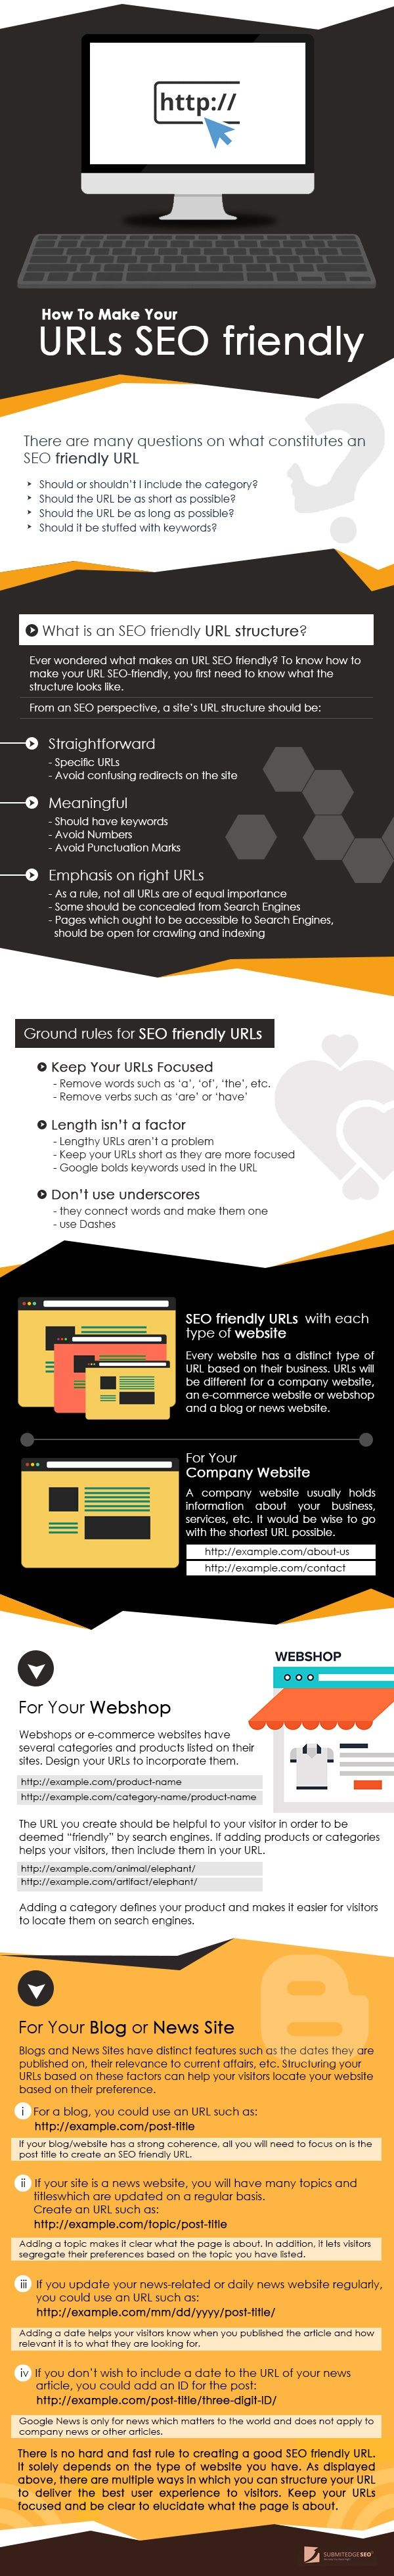 How to Make your URLs SEO-Friendly